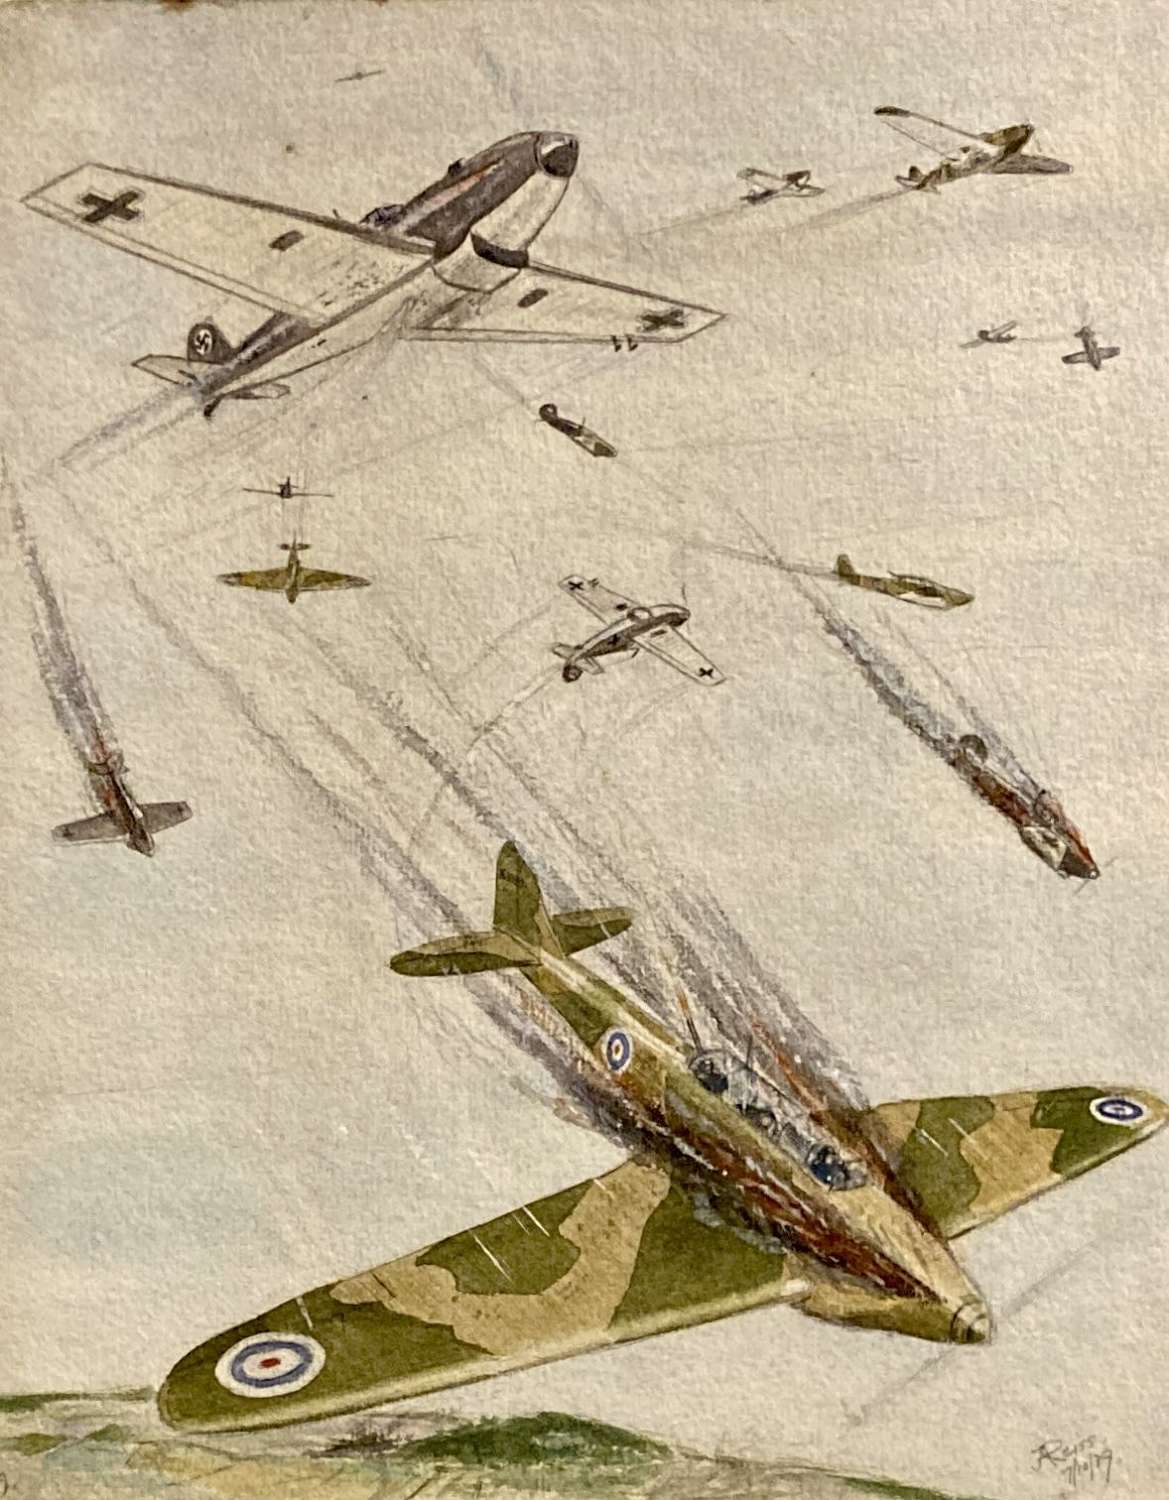 WW2 aerial combat drawing by Capt J A Reiss dated 7th October 1939